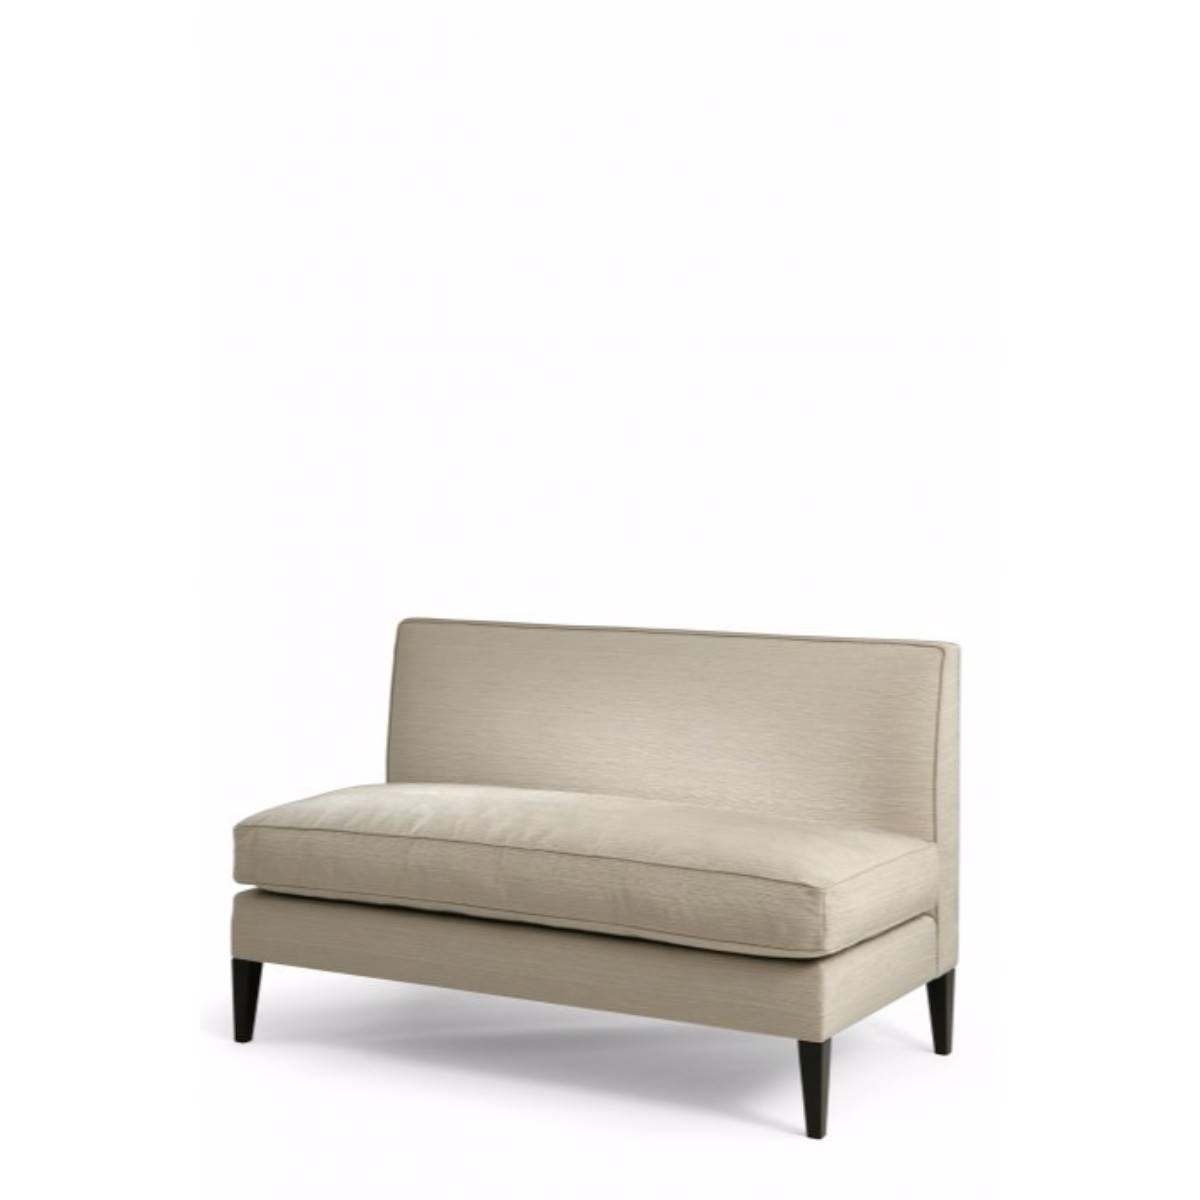 Bettsofa Coco Sofa Porta